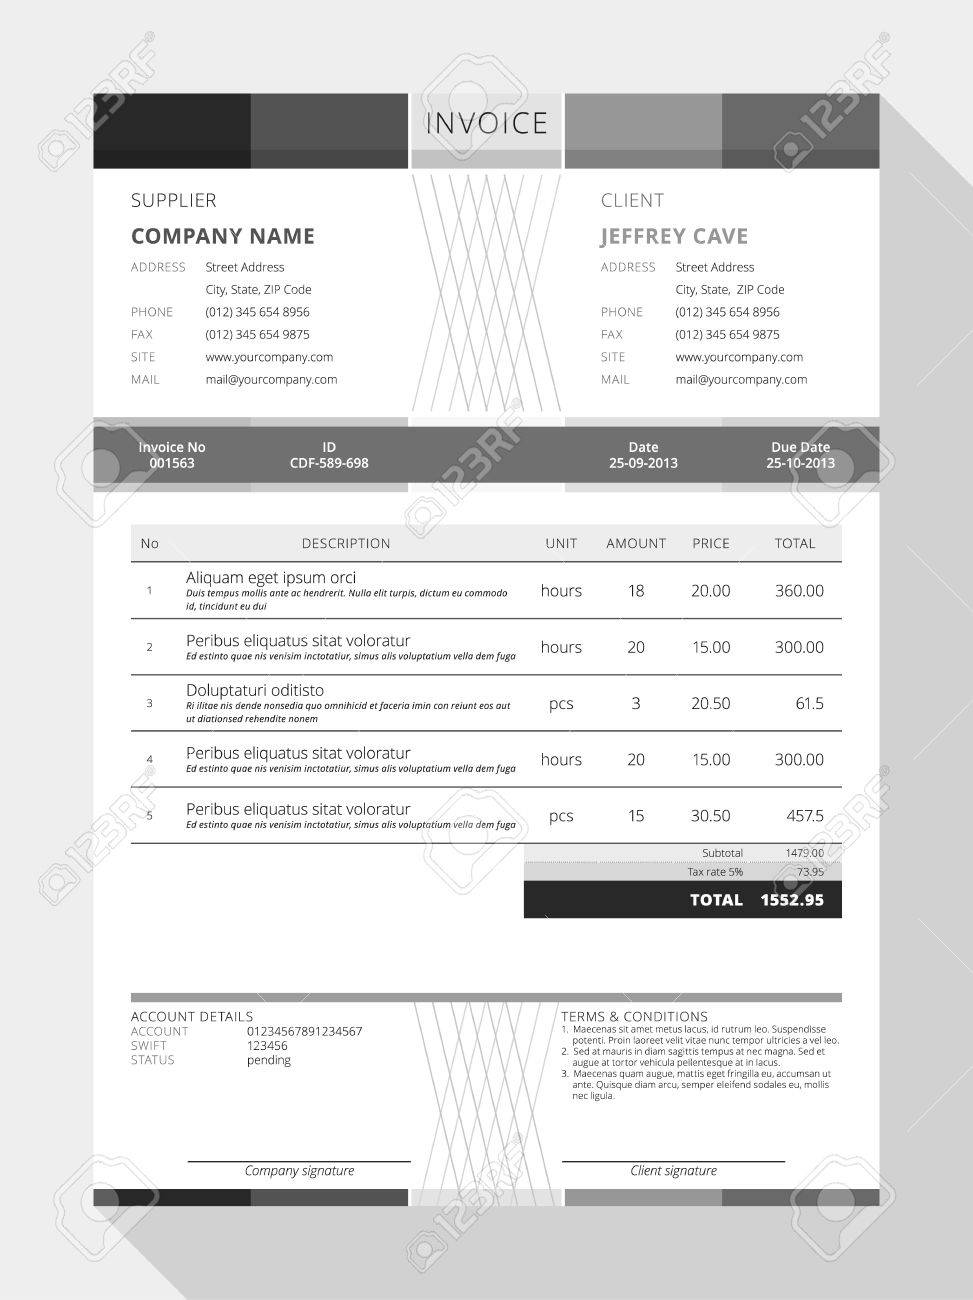 Angkajituus  Seductive Design An Invoice  Professional Graphic Design Invoice  With Entrancing Vector Customizable Invoice Form Template Design Vector   Design An Invoice With Easy On The Eye Export Invoice Also Honda Accord  Invoice Price In Addition Sample Invoice For Professional Services And How Do I Find Invoice Price On A New Car As Well As Sample Excel Invoice Additionally Contractor Invoice Template Free From Happytomco With Angkajituus  Entrancing Design An Invoice  Professional Graphic Design Invoice  With Easy On The Eye Vector Customizable Invoice Form Template Design Vector   Design An Invoice And Seductive Export Invoice Also Honda Accord  Invoice Price In Addition Sample Invoice For Professional Services From Happytomco